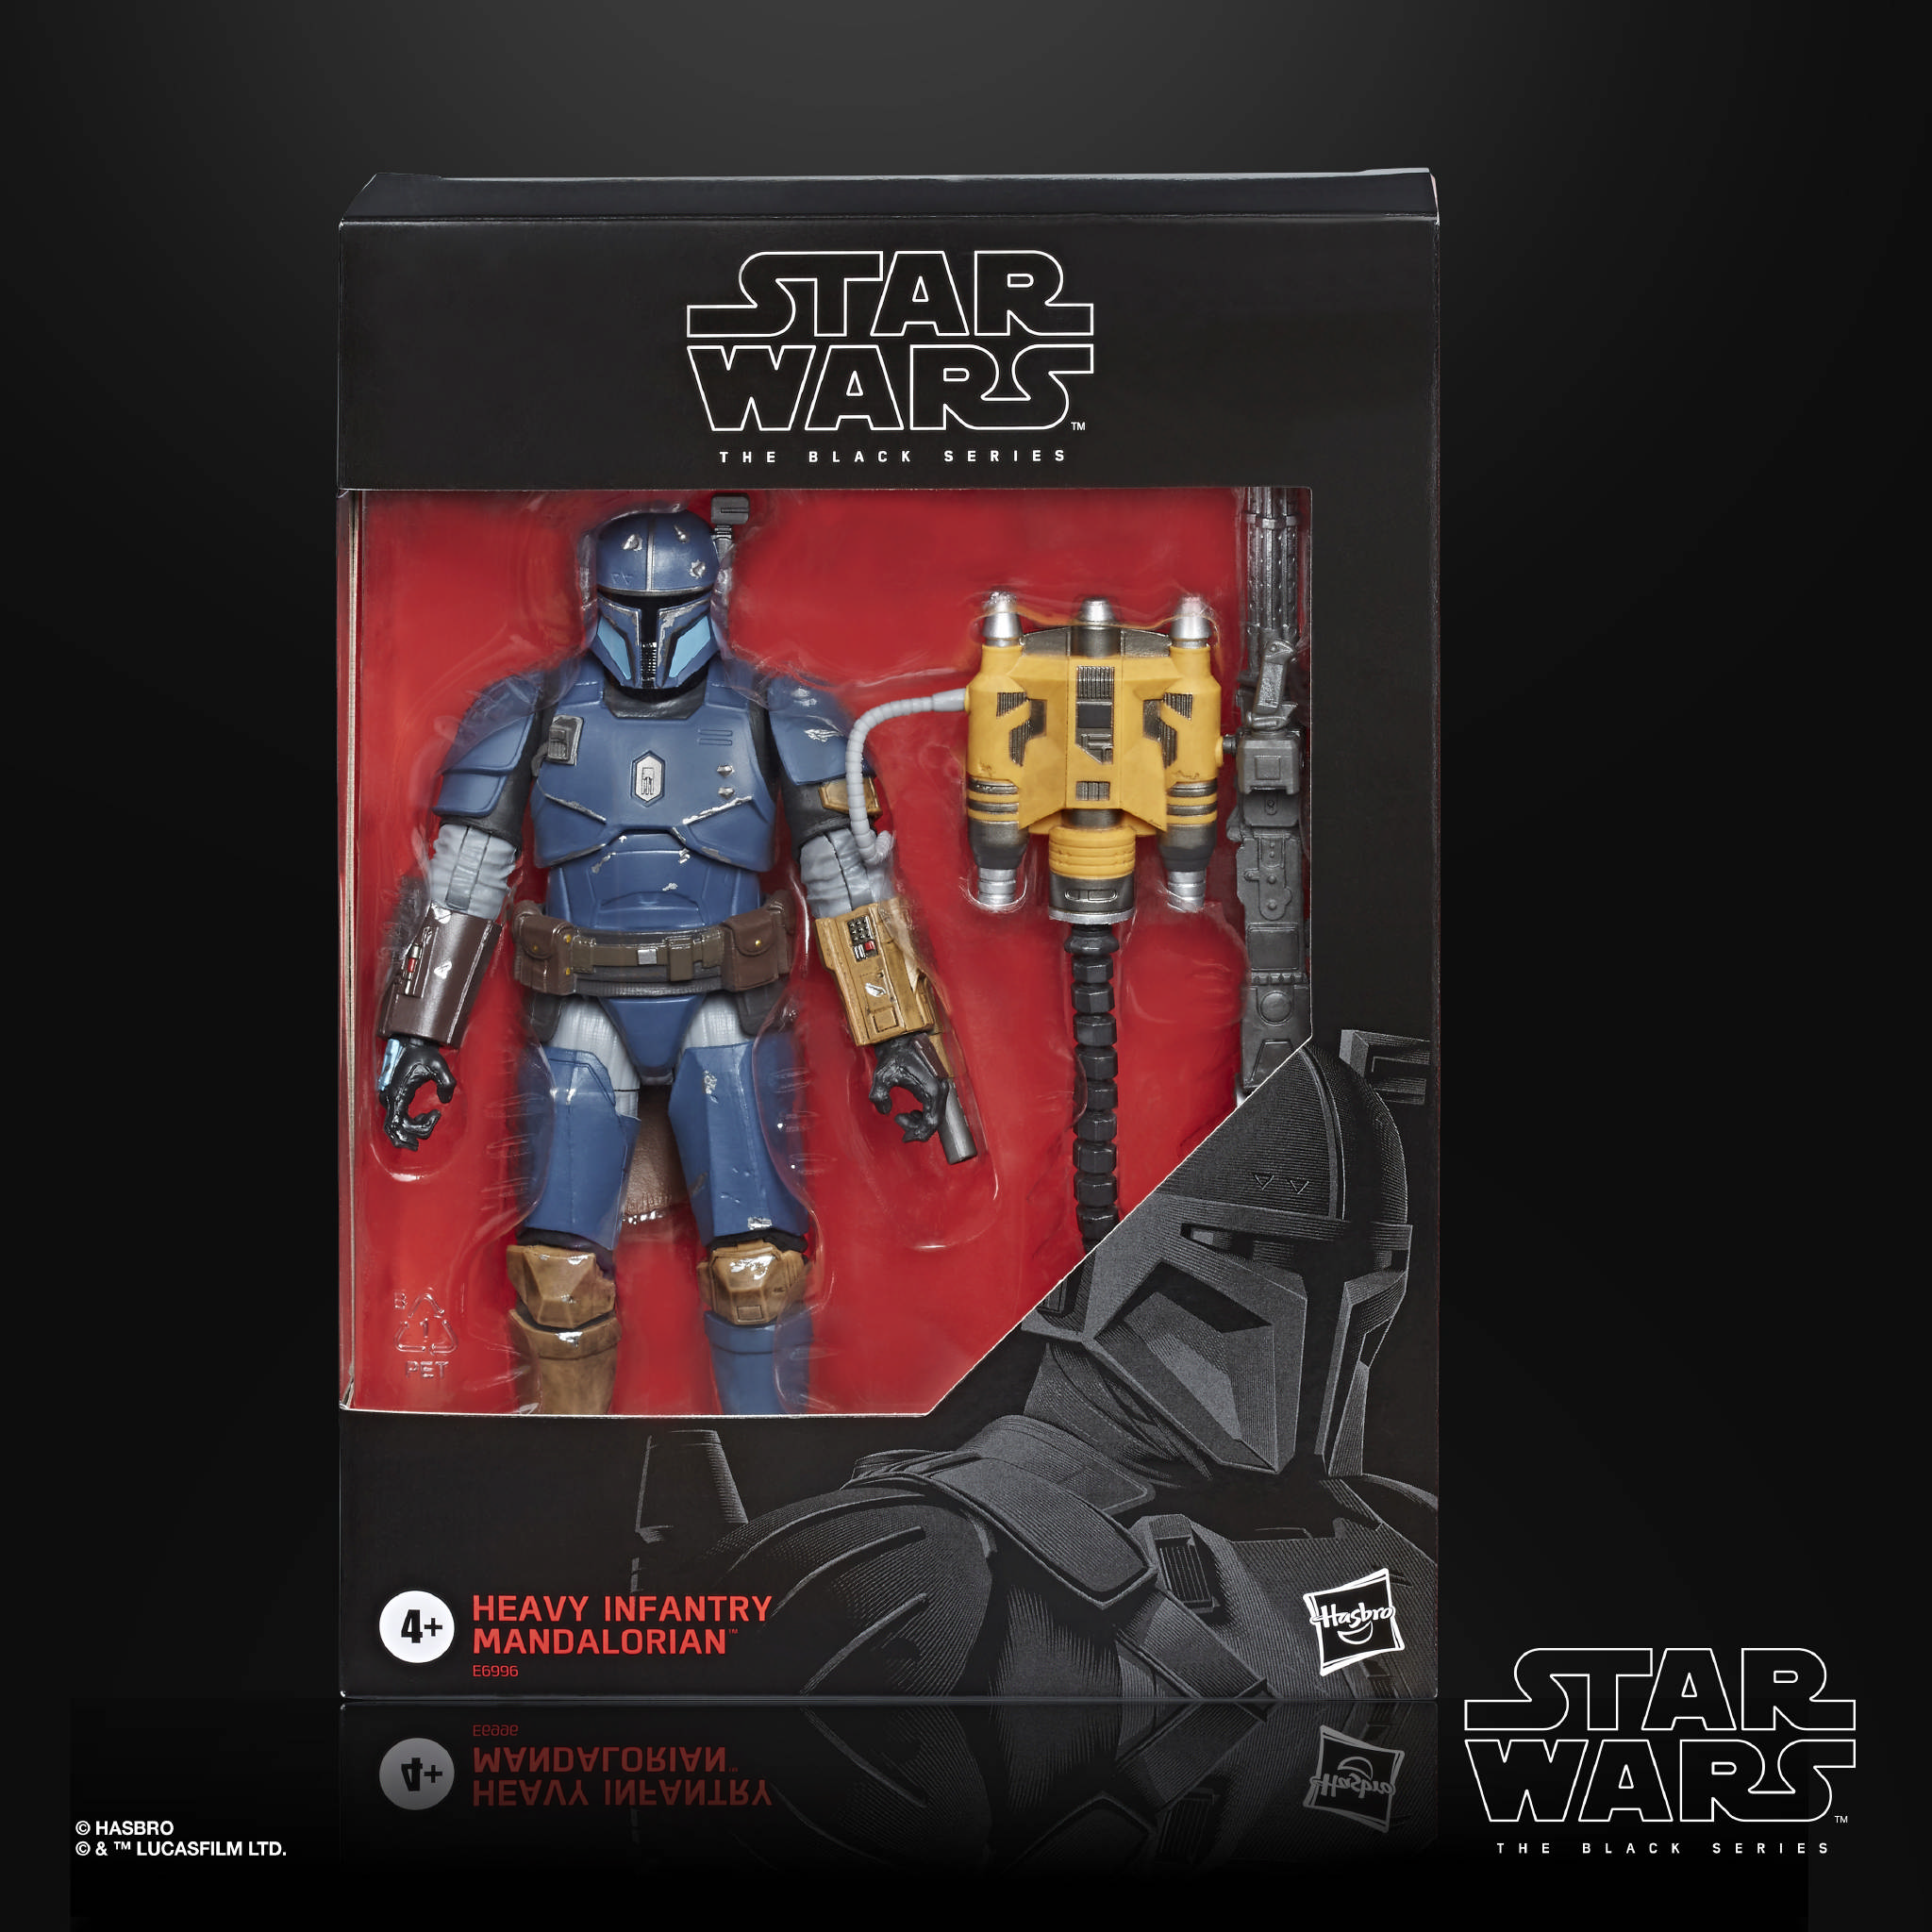 STAR WARS THE BLACK SERIES 6 INCH HEAVY INFANTRY MANDALORIAN Figure in pck